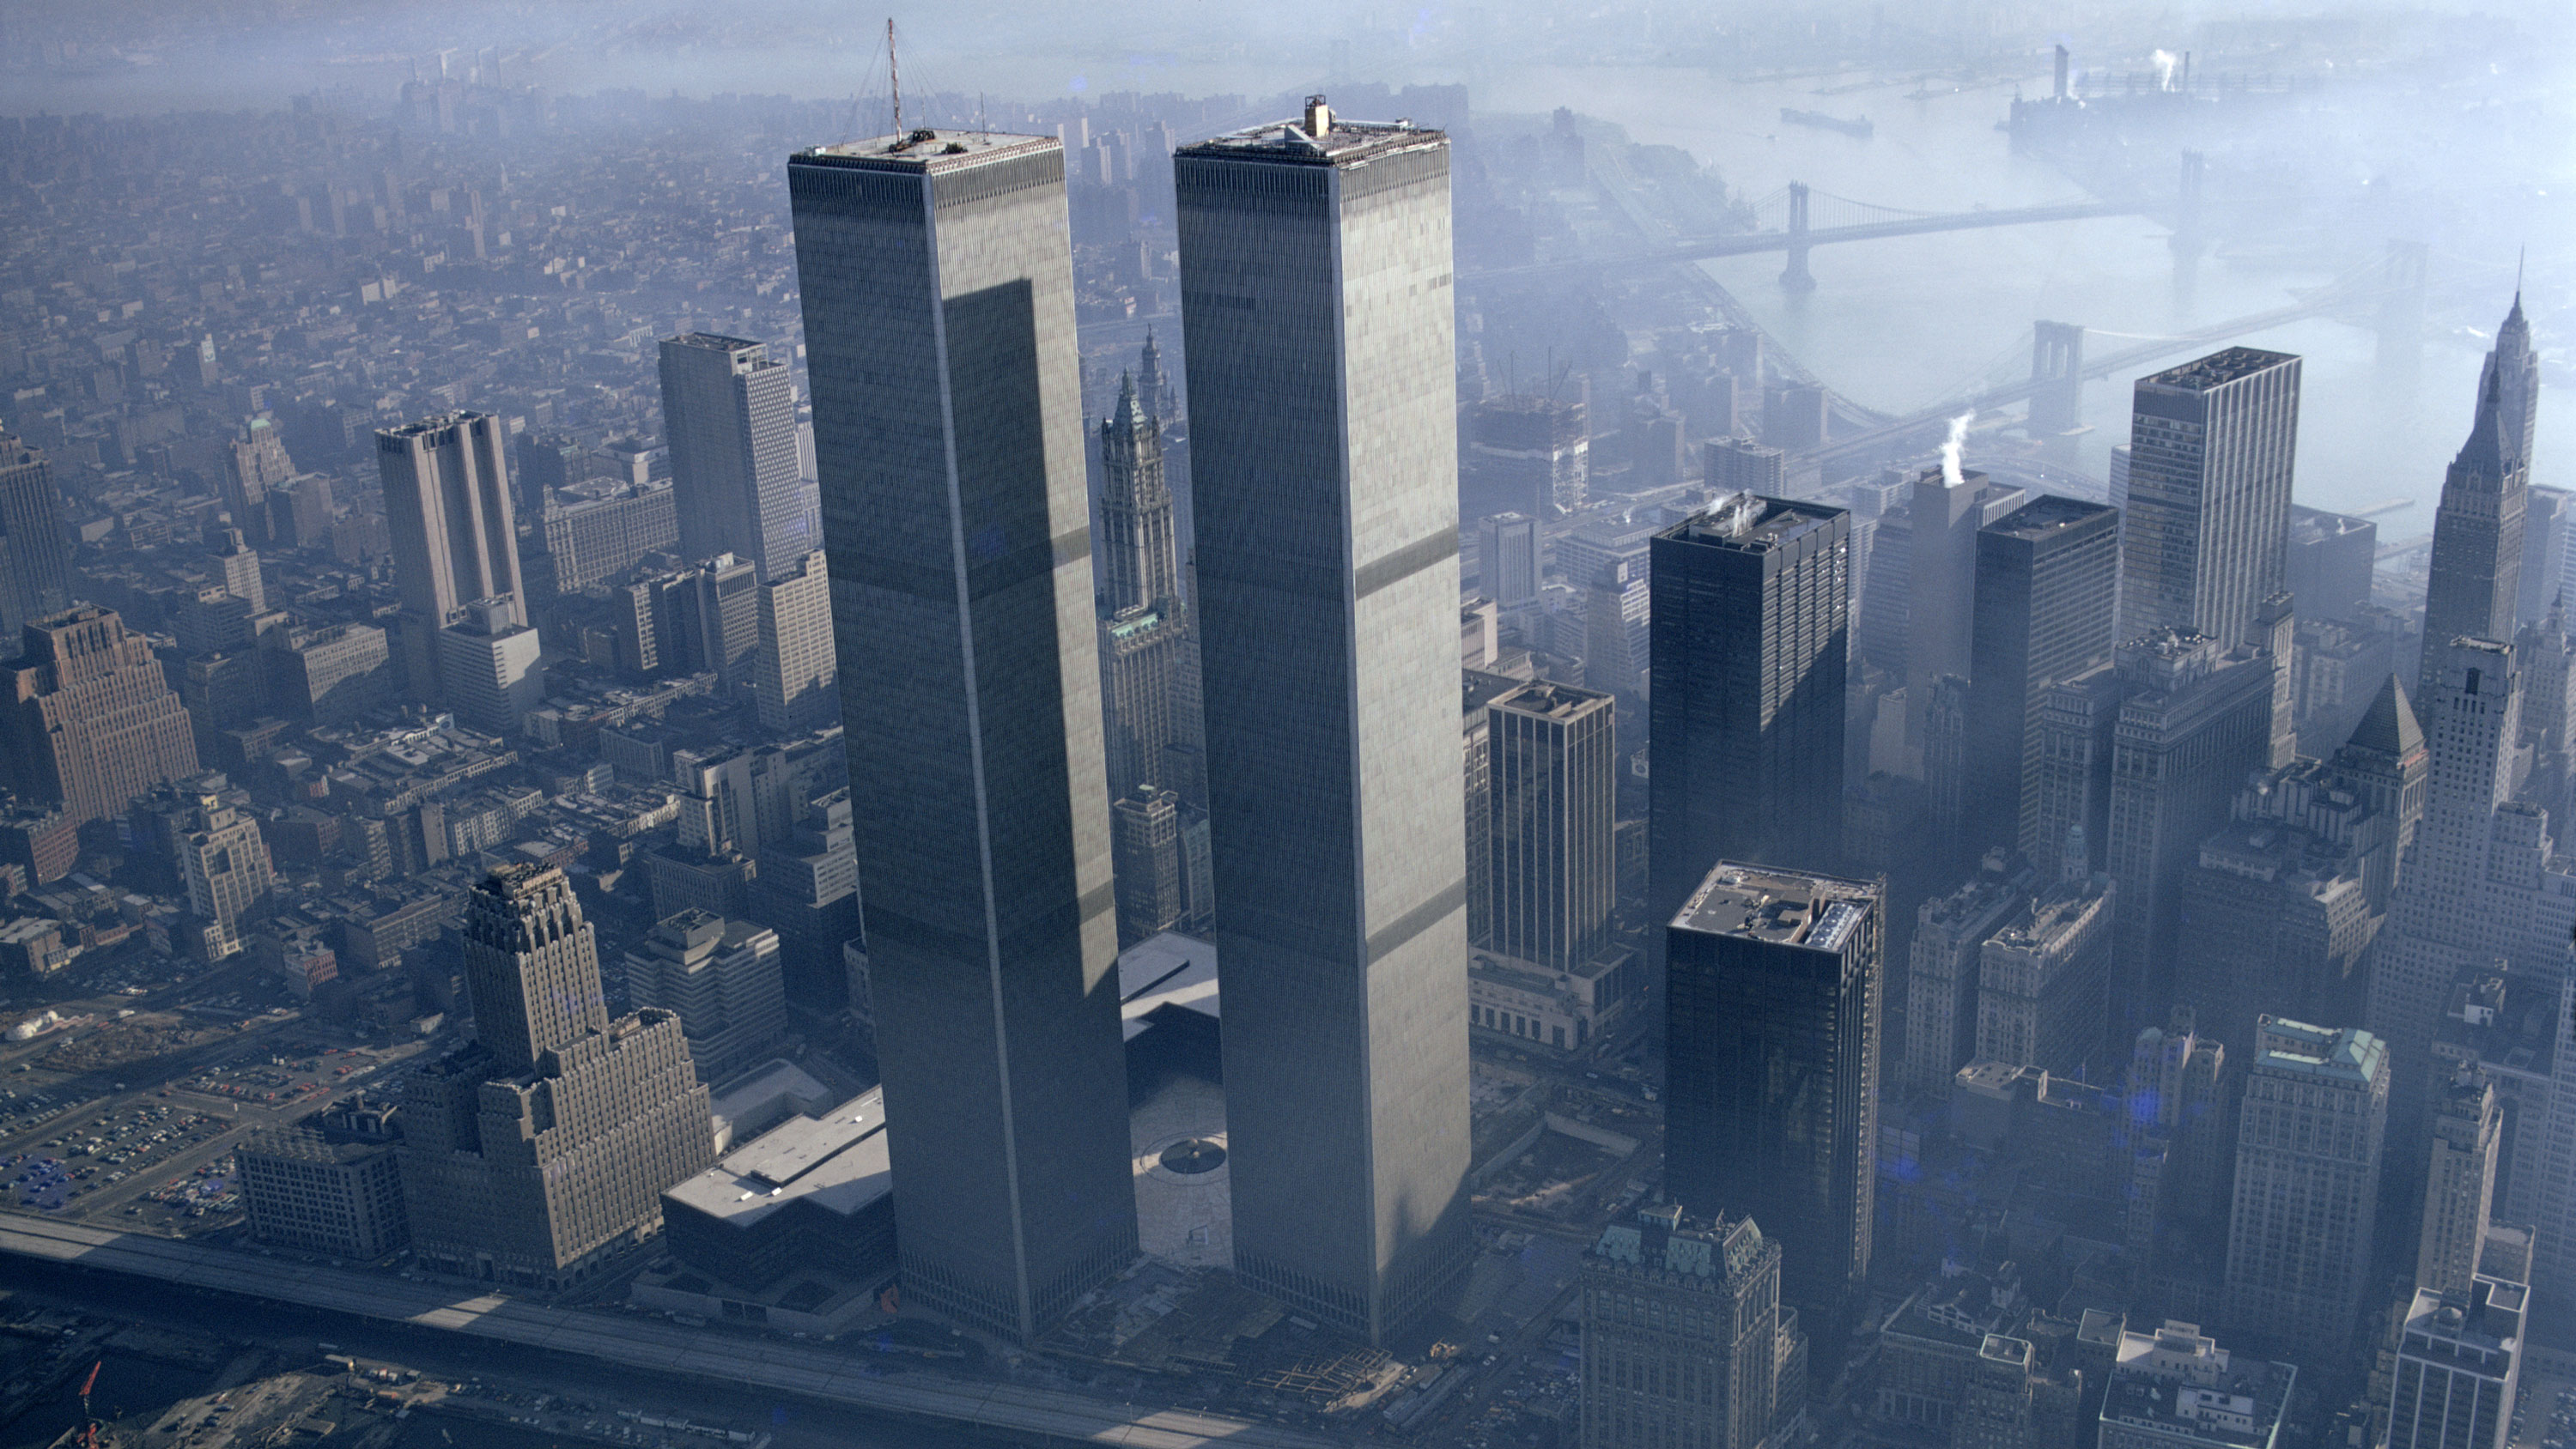 Design of the World Trade Center